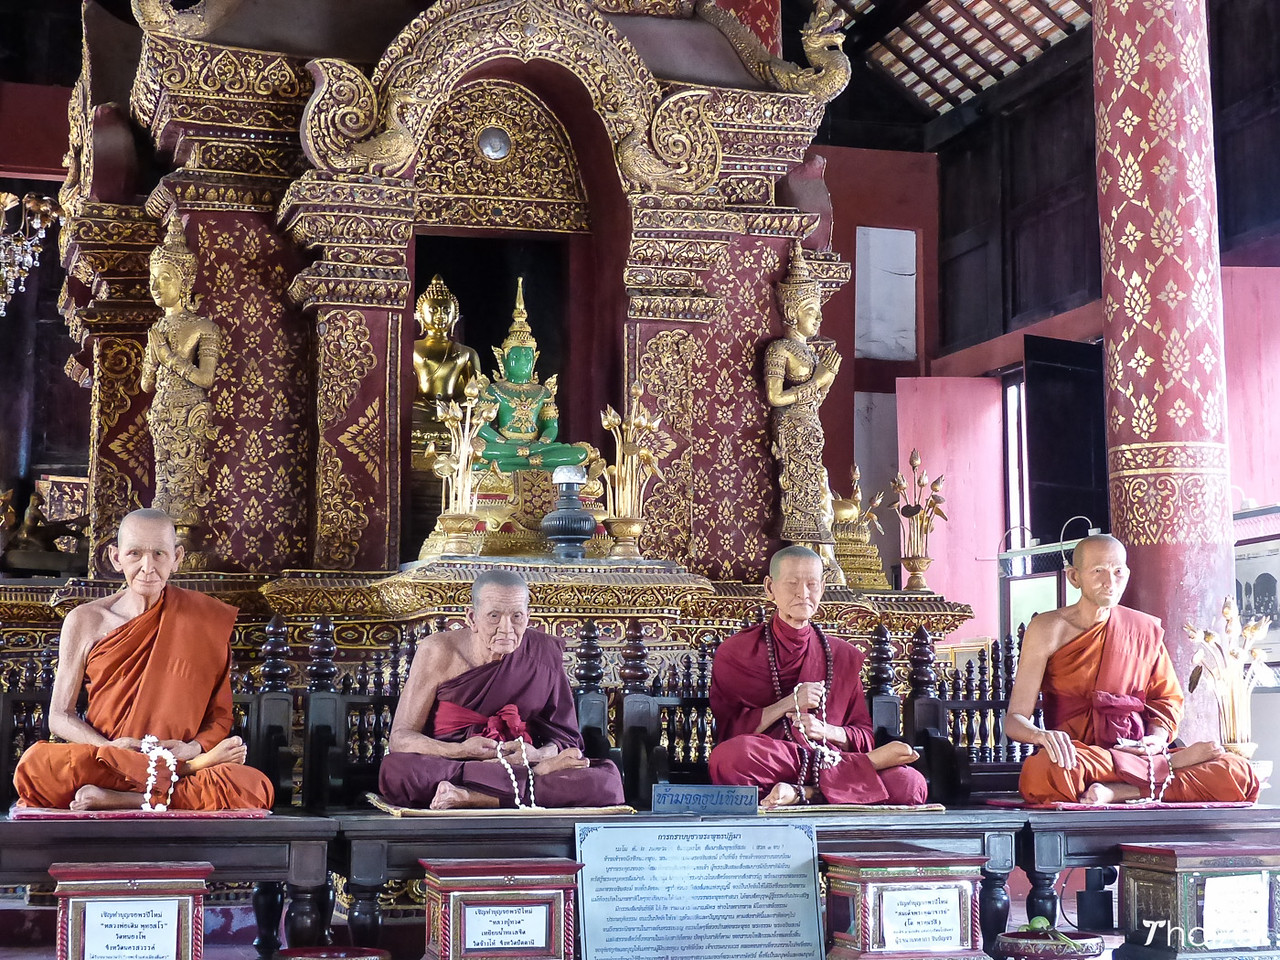 waxwork monks and copy of the Emerald Buddha at Wat Phra Singh, Chiang Mai